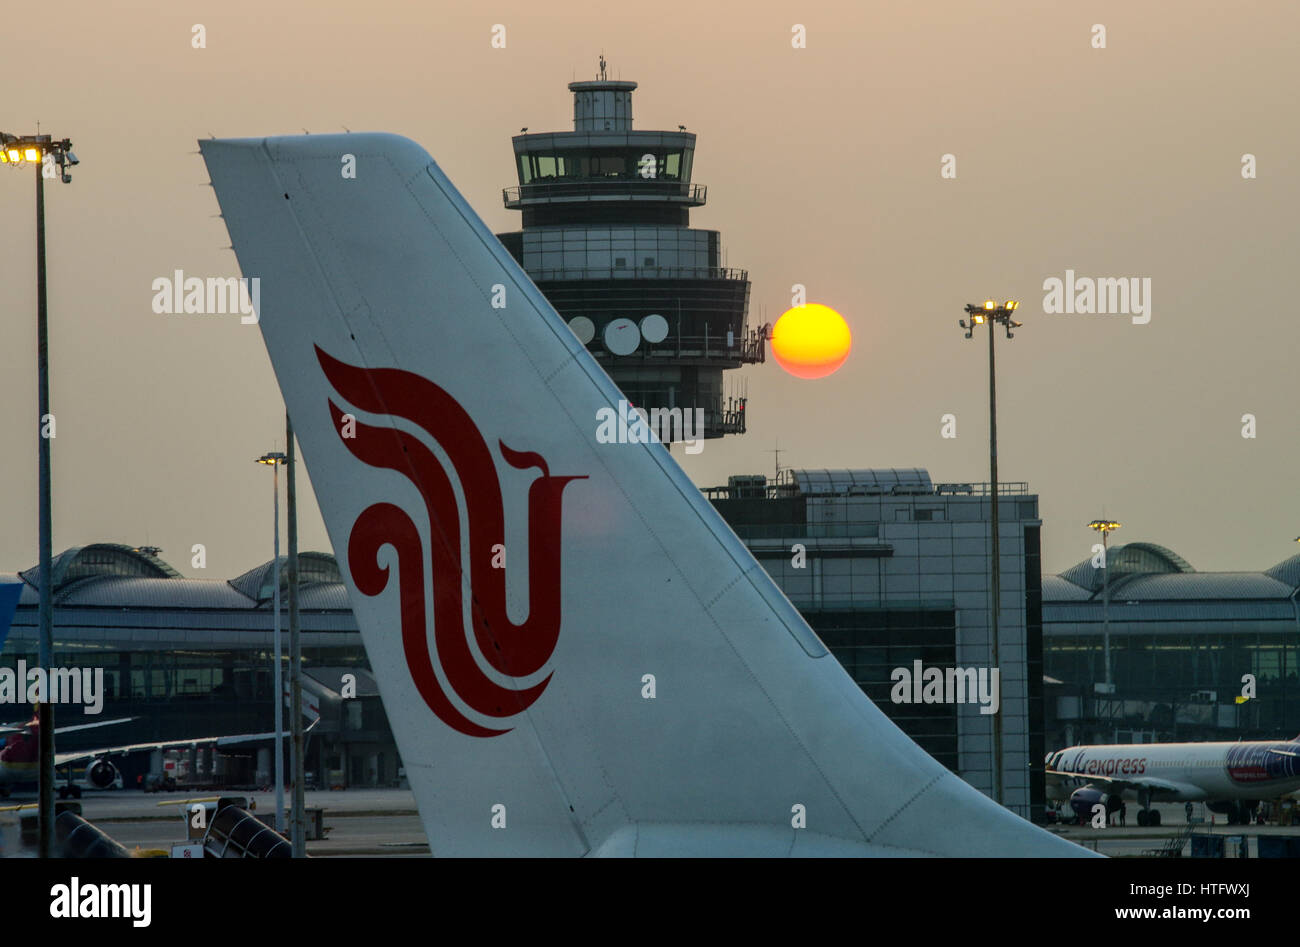 Sun setting behind the Air Traffic Control Tower in Hong Kong Chek Lap Kok Airport - Stock Image